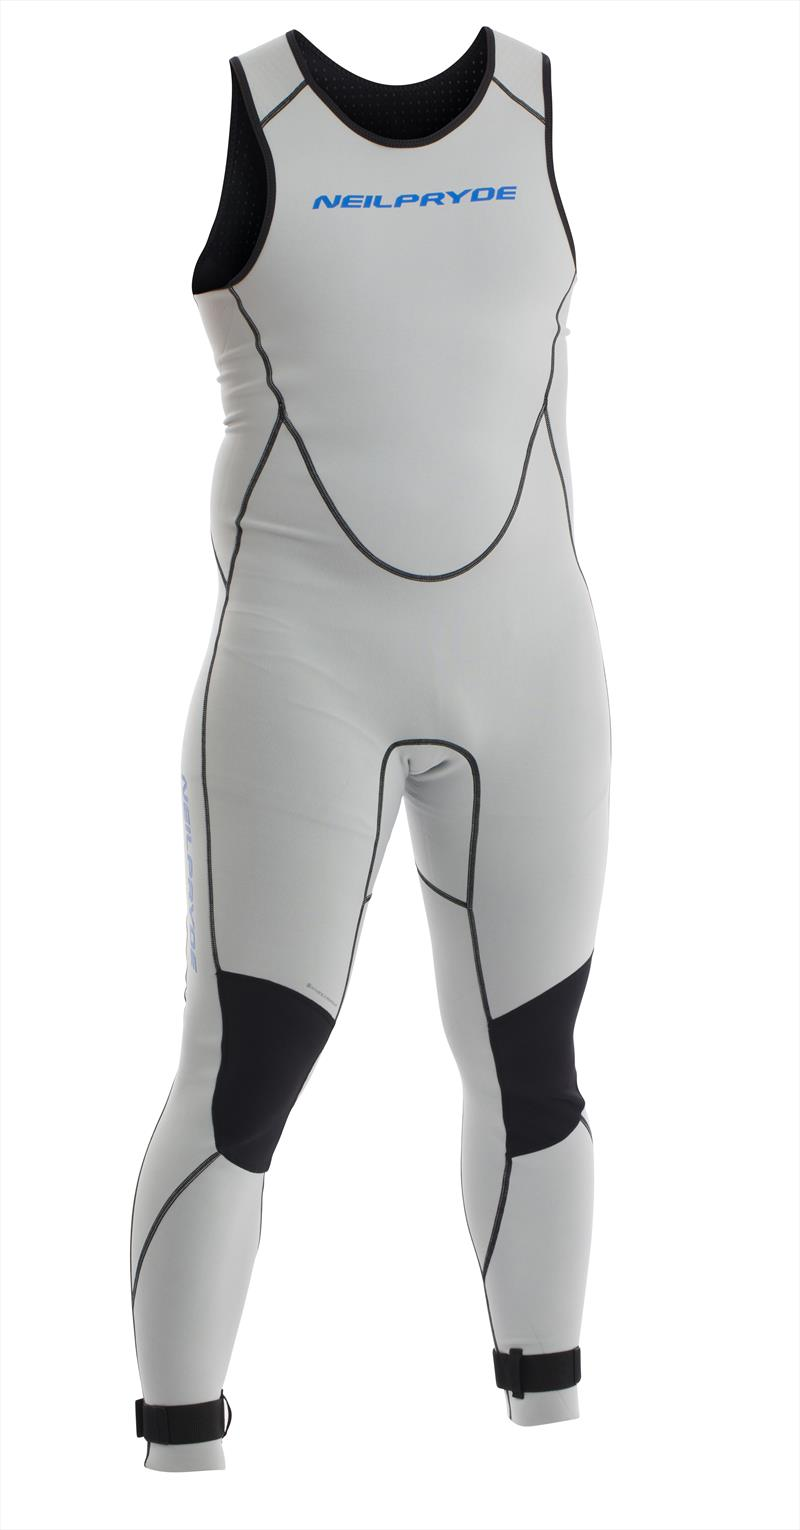 NeilPryde Sailing's Elite Firewire 1mm wetsuit photo copyright NeilPryde Sailing taken at  and featuring the  class